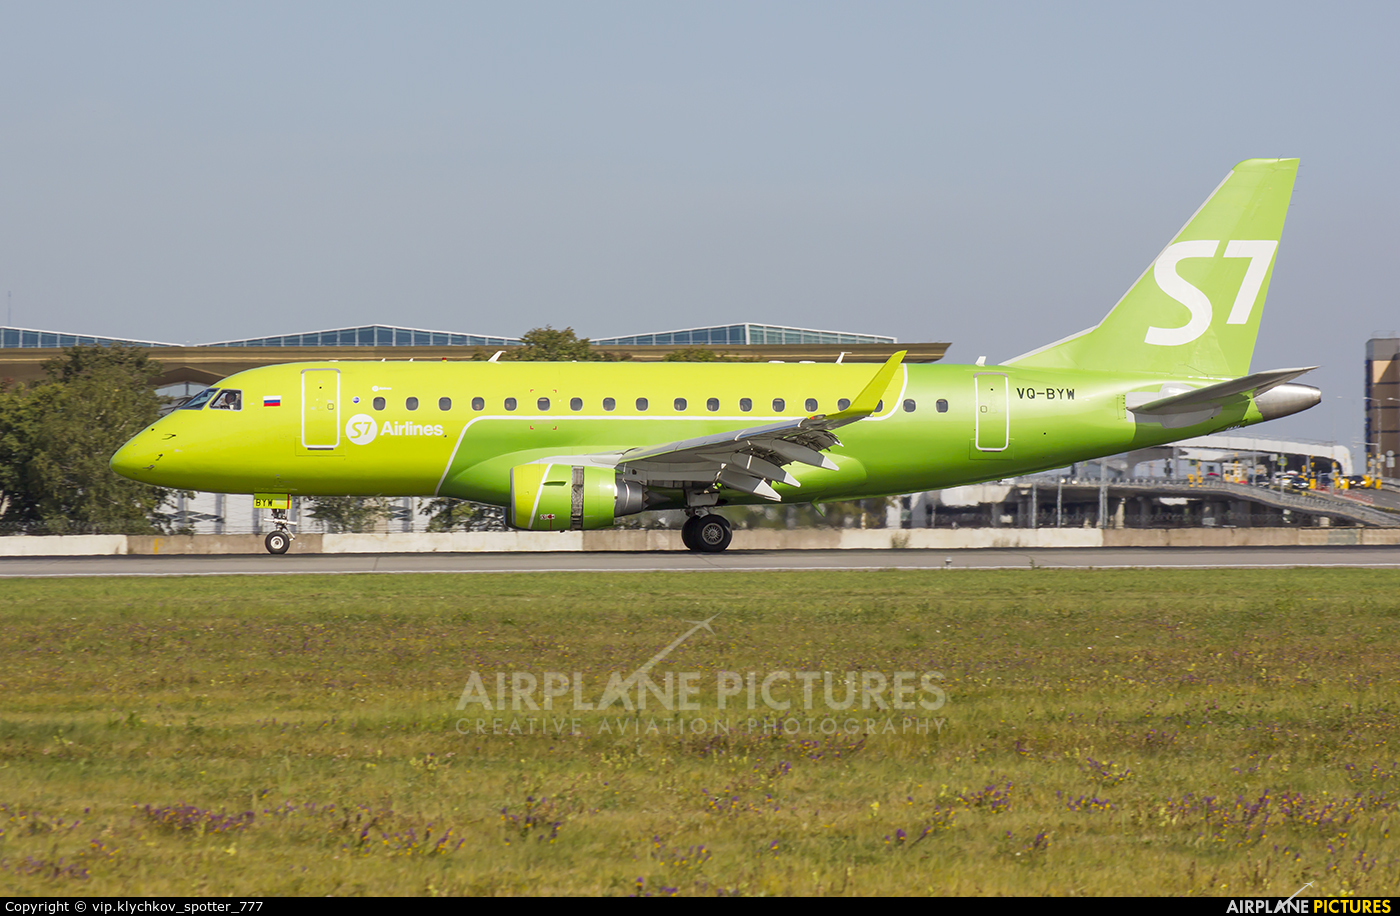 S7 Airlines VQ-BYW aircraft at St. Petersburg - Pulkovo